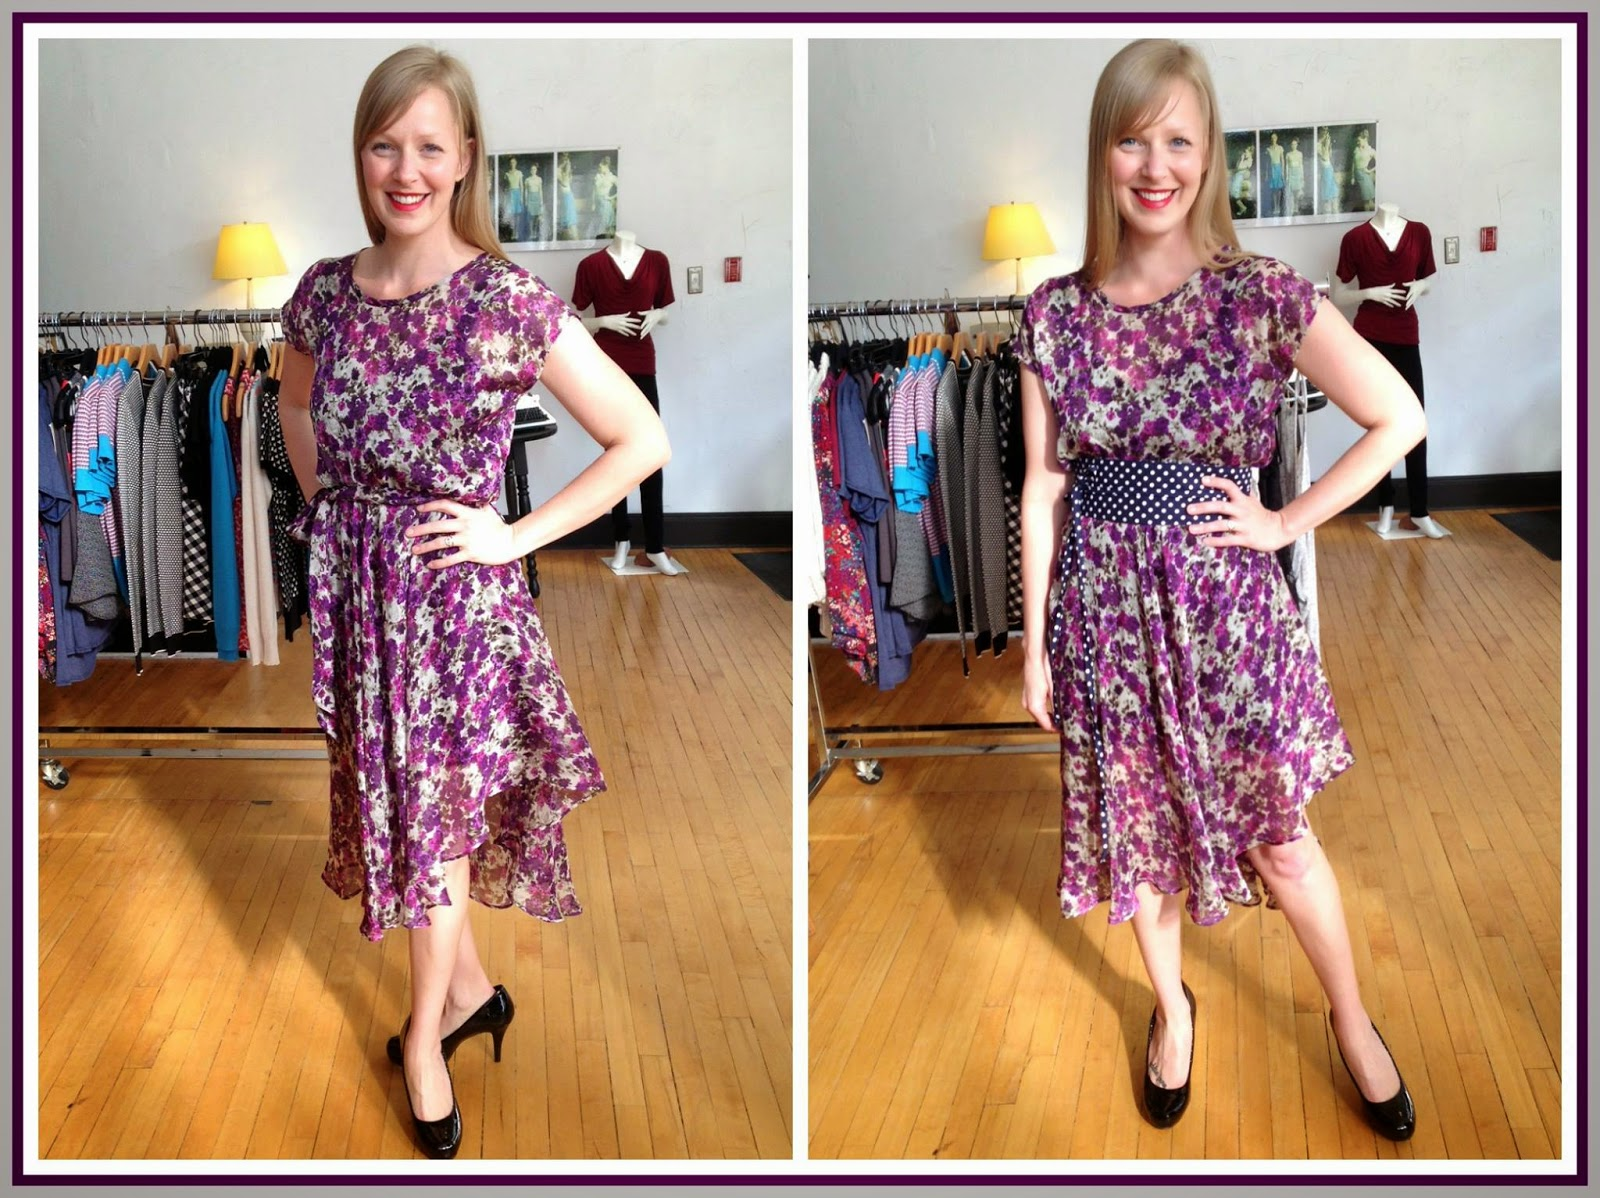 Nora by Sarah Bibb ($190) in purple floral, Ava slip ($65-$72) by Sarah Bibb, Obi belt ($40) by Sarah Bibb at Folly